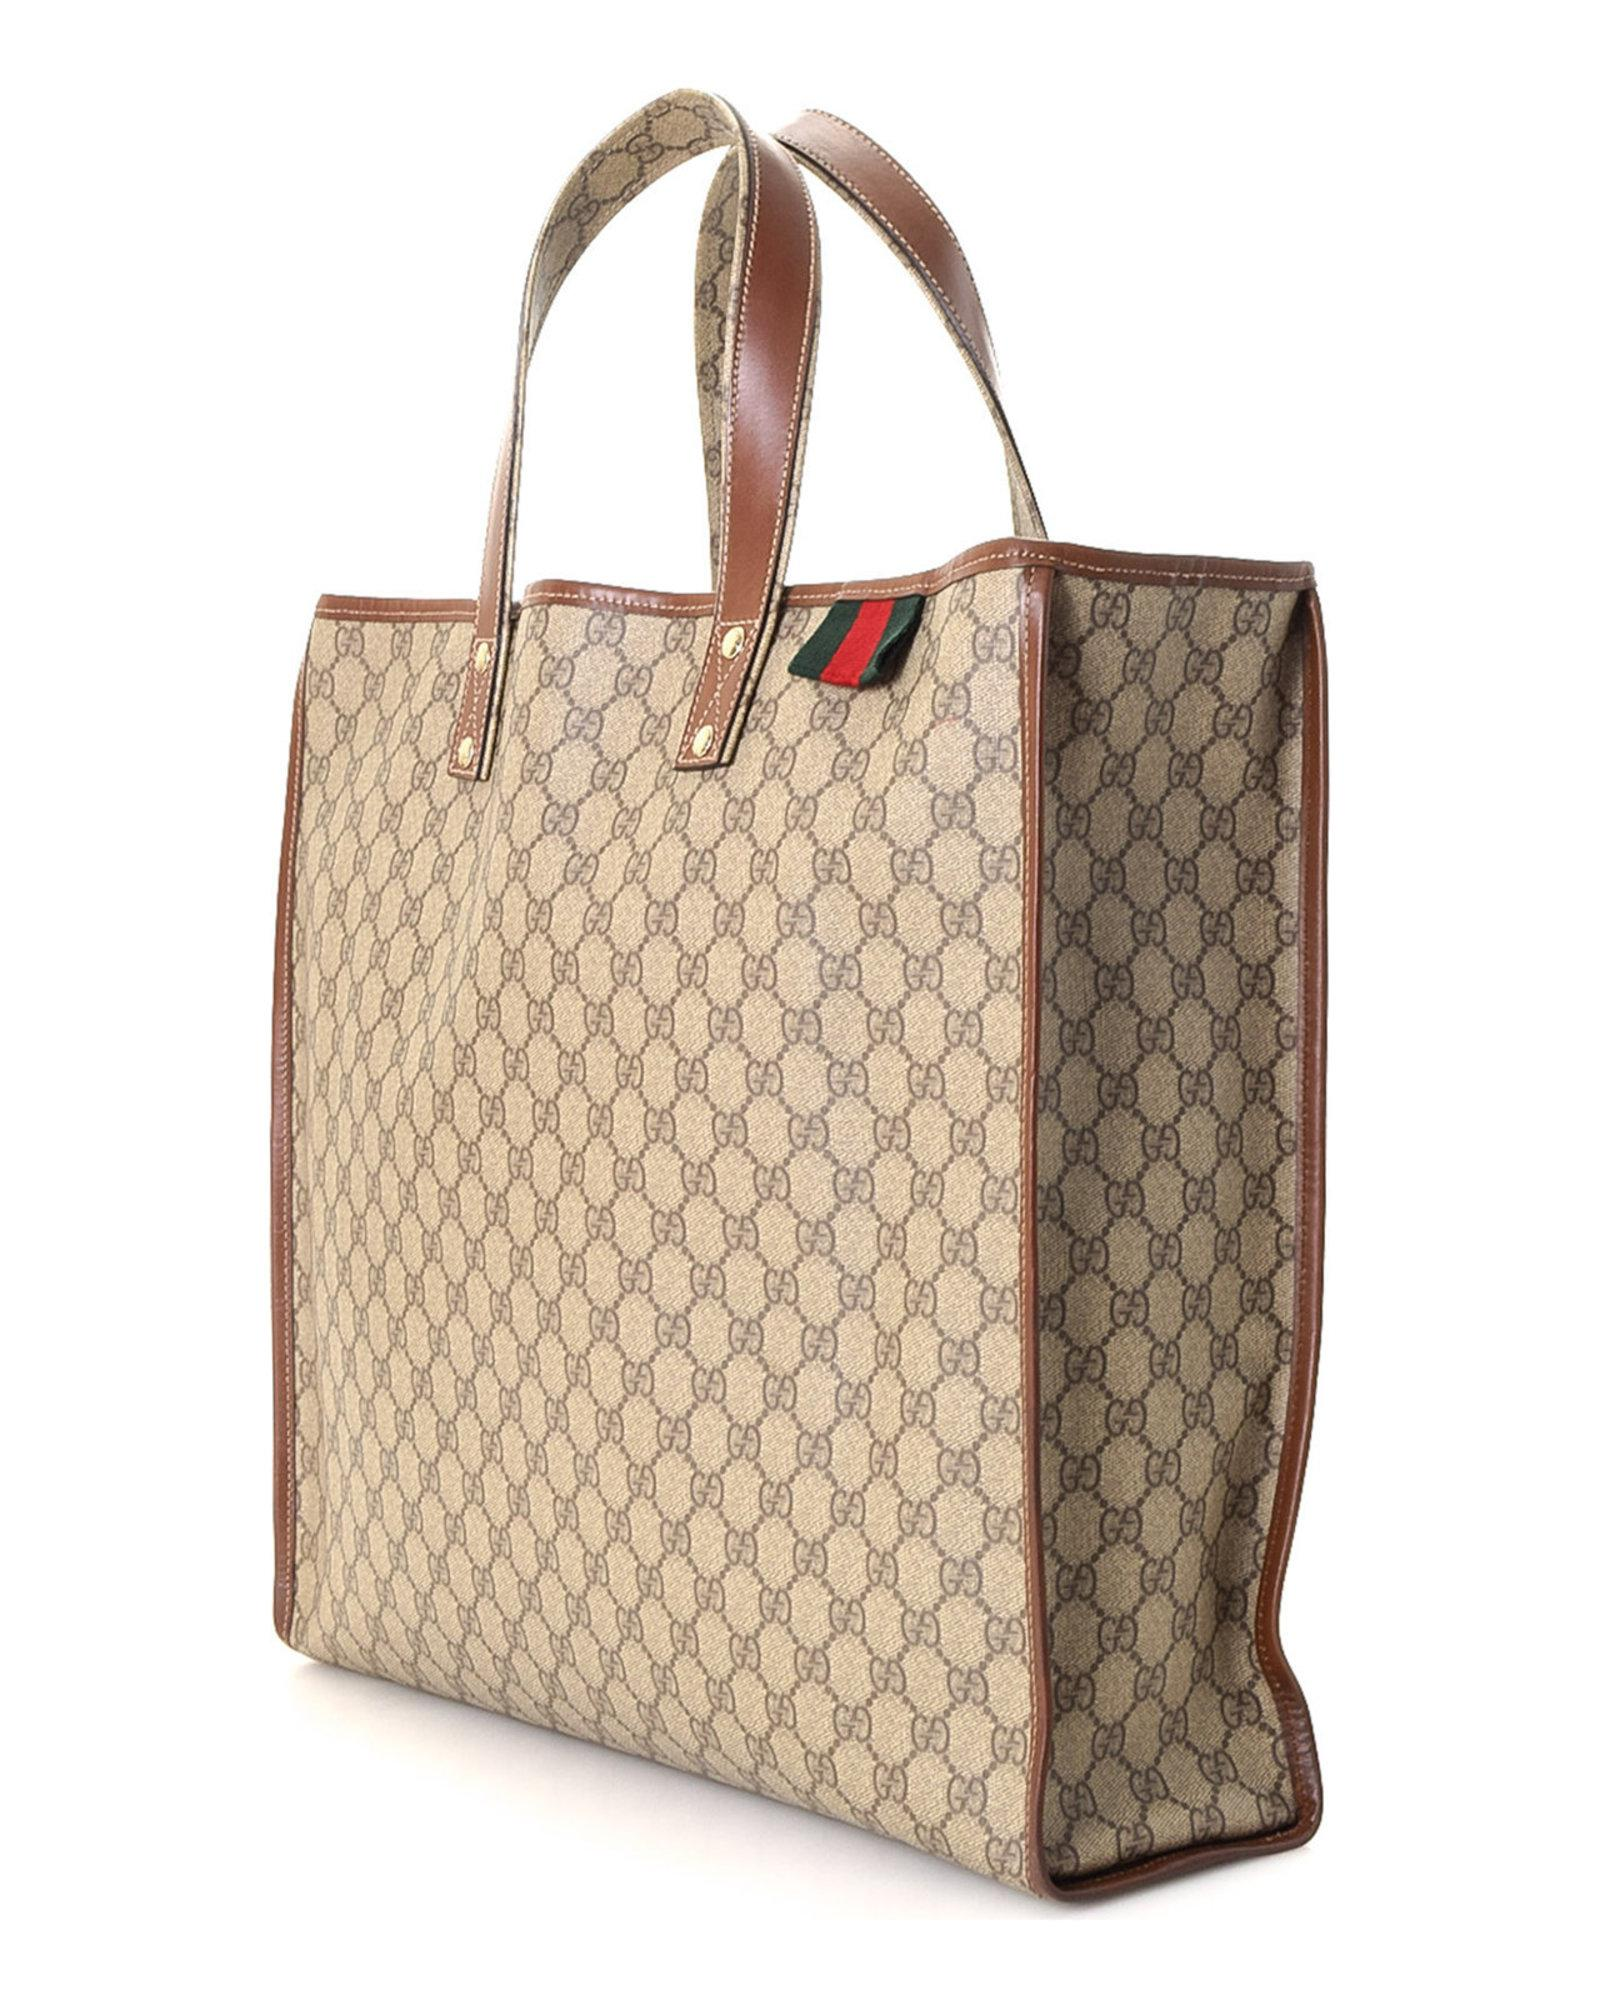 64d5d14382a1 Lyst - Gucci Supreme Tote - Vintage in Natural